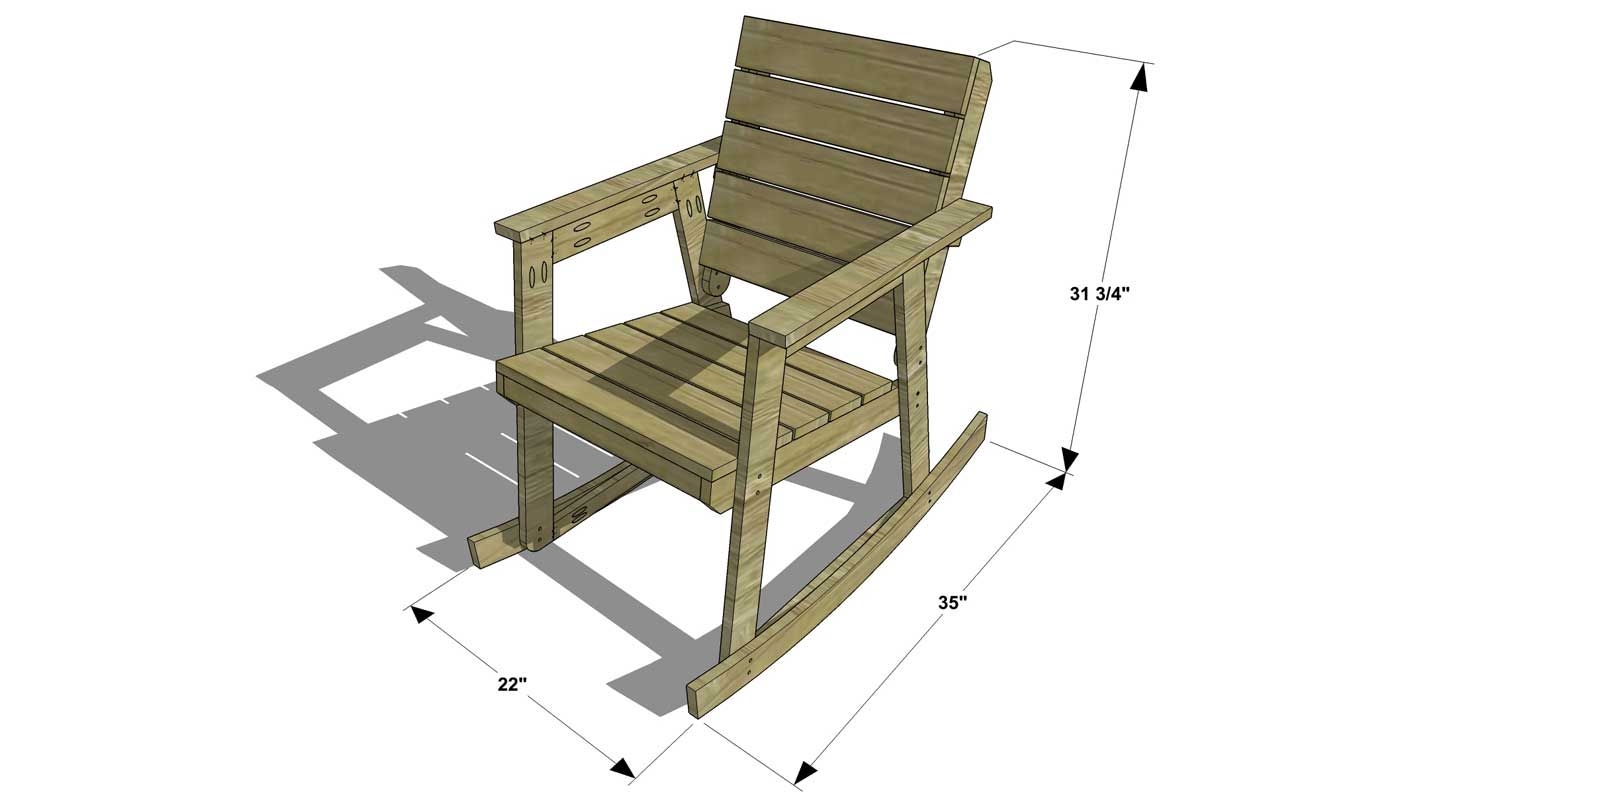 Free DIY Furniture Plans // How to Build a Rocking Chair - The Design ...